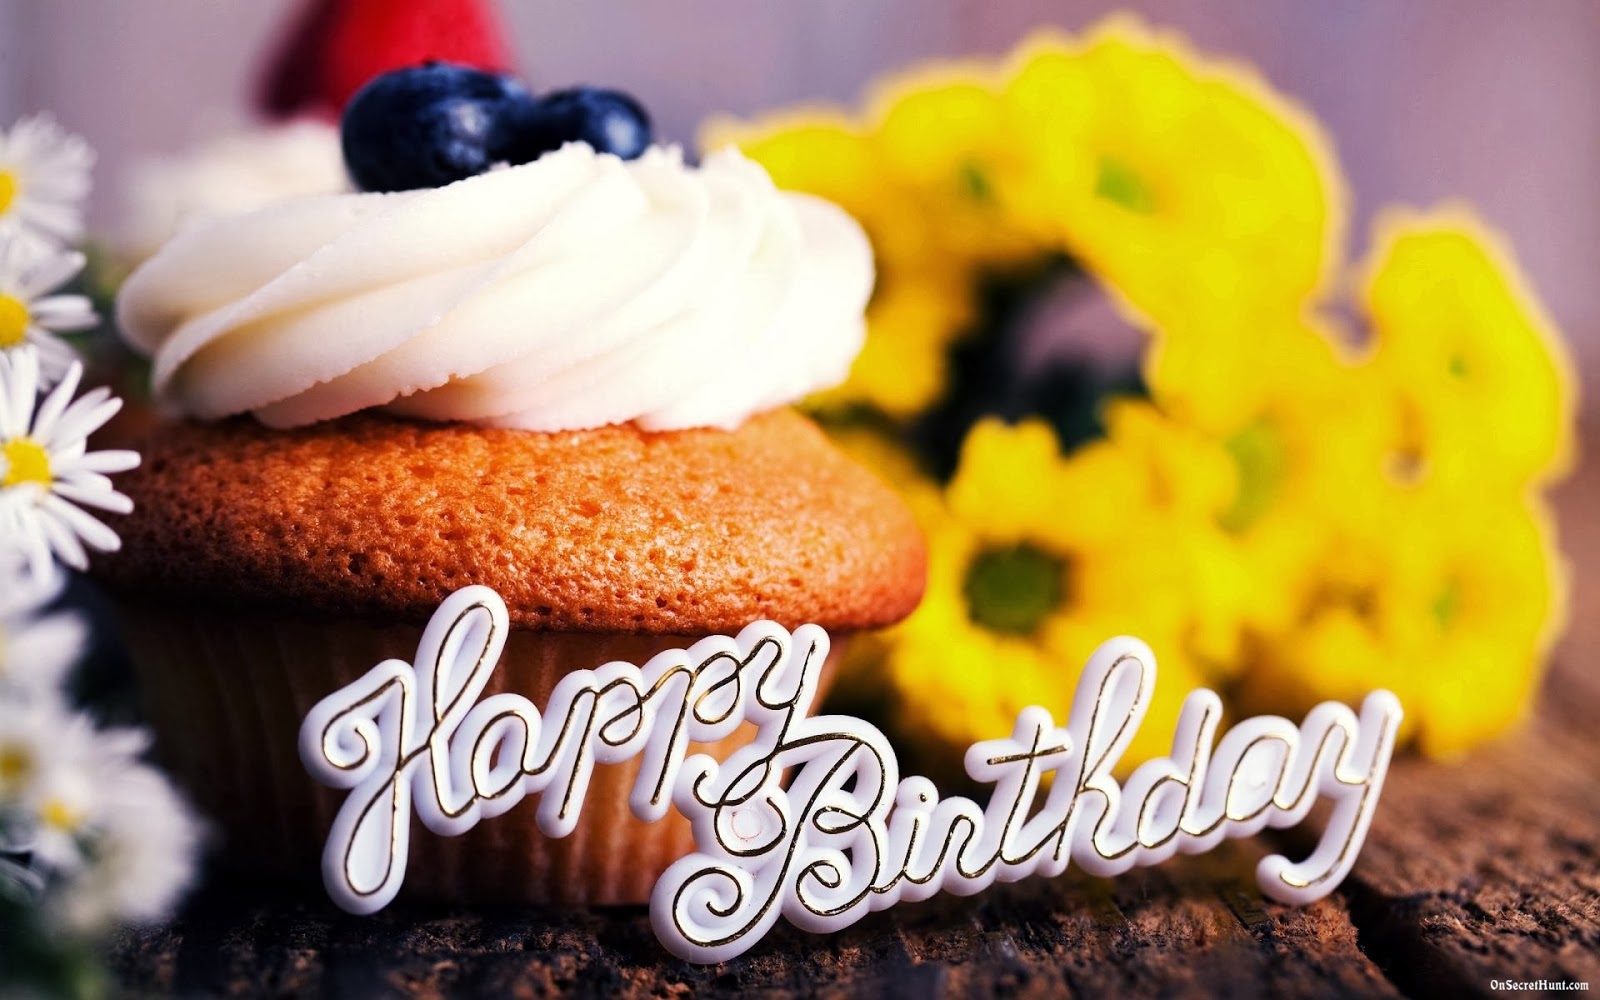 Beautiful Birthday Wallpaper : Happy birthday cake wallpaper - beautiful desktop wallpapers 2014